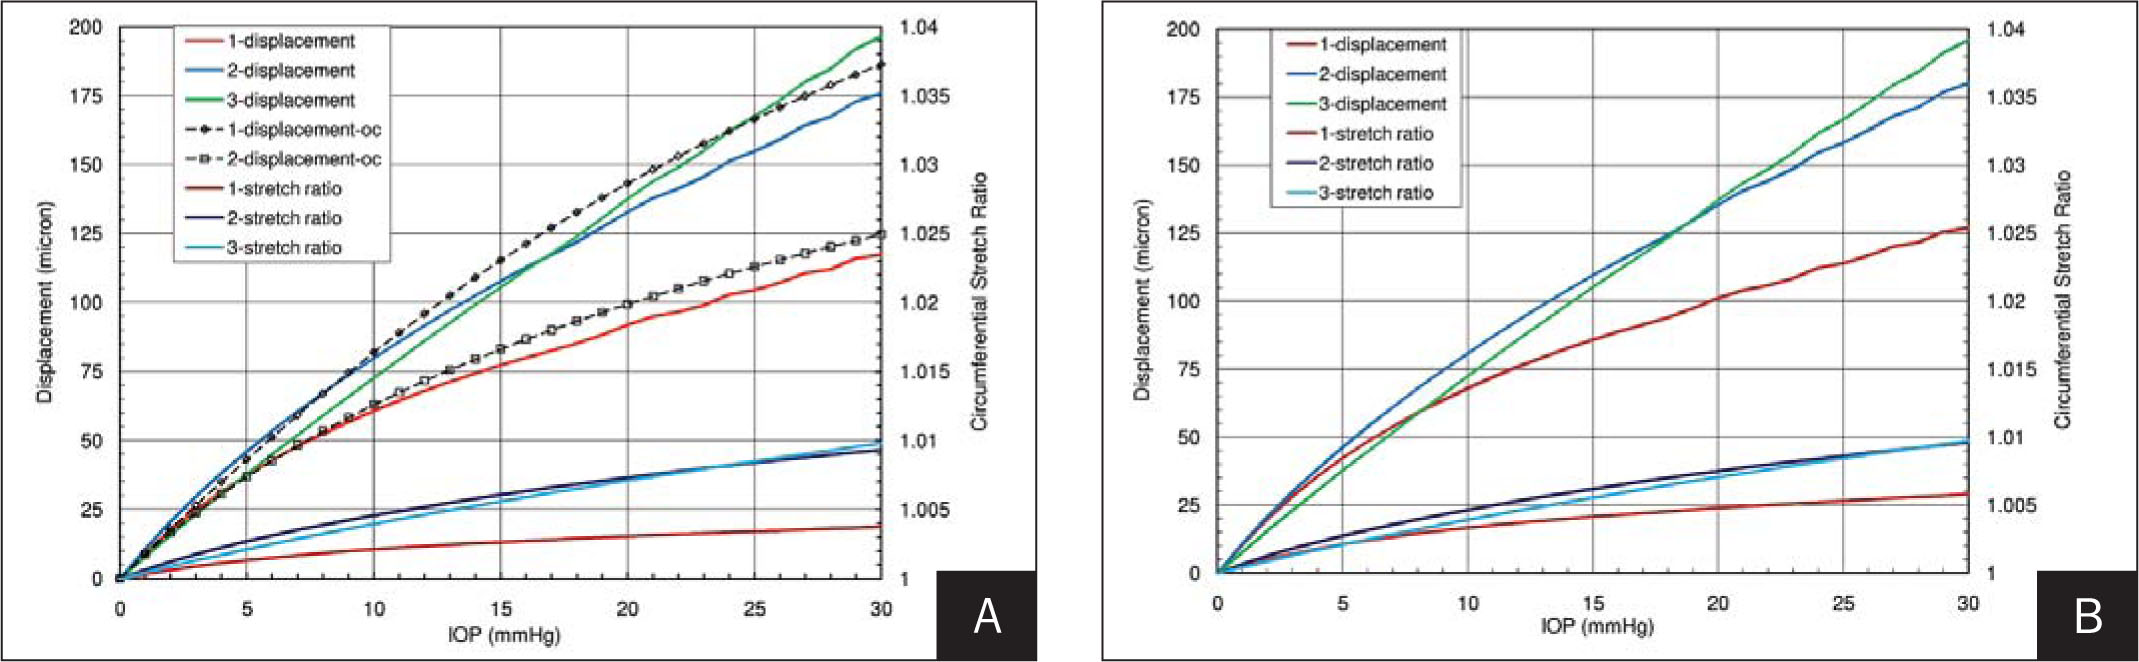 Displacement and Stretch Ratio as a Function of Intraocular Pressure (IOP) at the Center, Paracenter, and Limbus. A) Preoperative LASIK (H) and Cornea-Only (fixed Limbus) and B) 6D-H Postoperative LASIK Models. The Stiffer Hyperelastic Behavior of the Cornea Favors Paracentral and Limbal Displacement over Central Corneal Displacement in Both the Unoperated and Postoperative LASIK States, but only when Extracorneal Structures Are Considered.